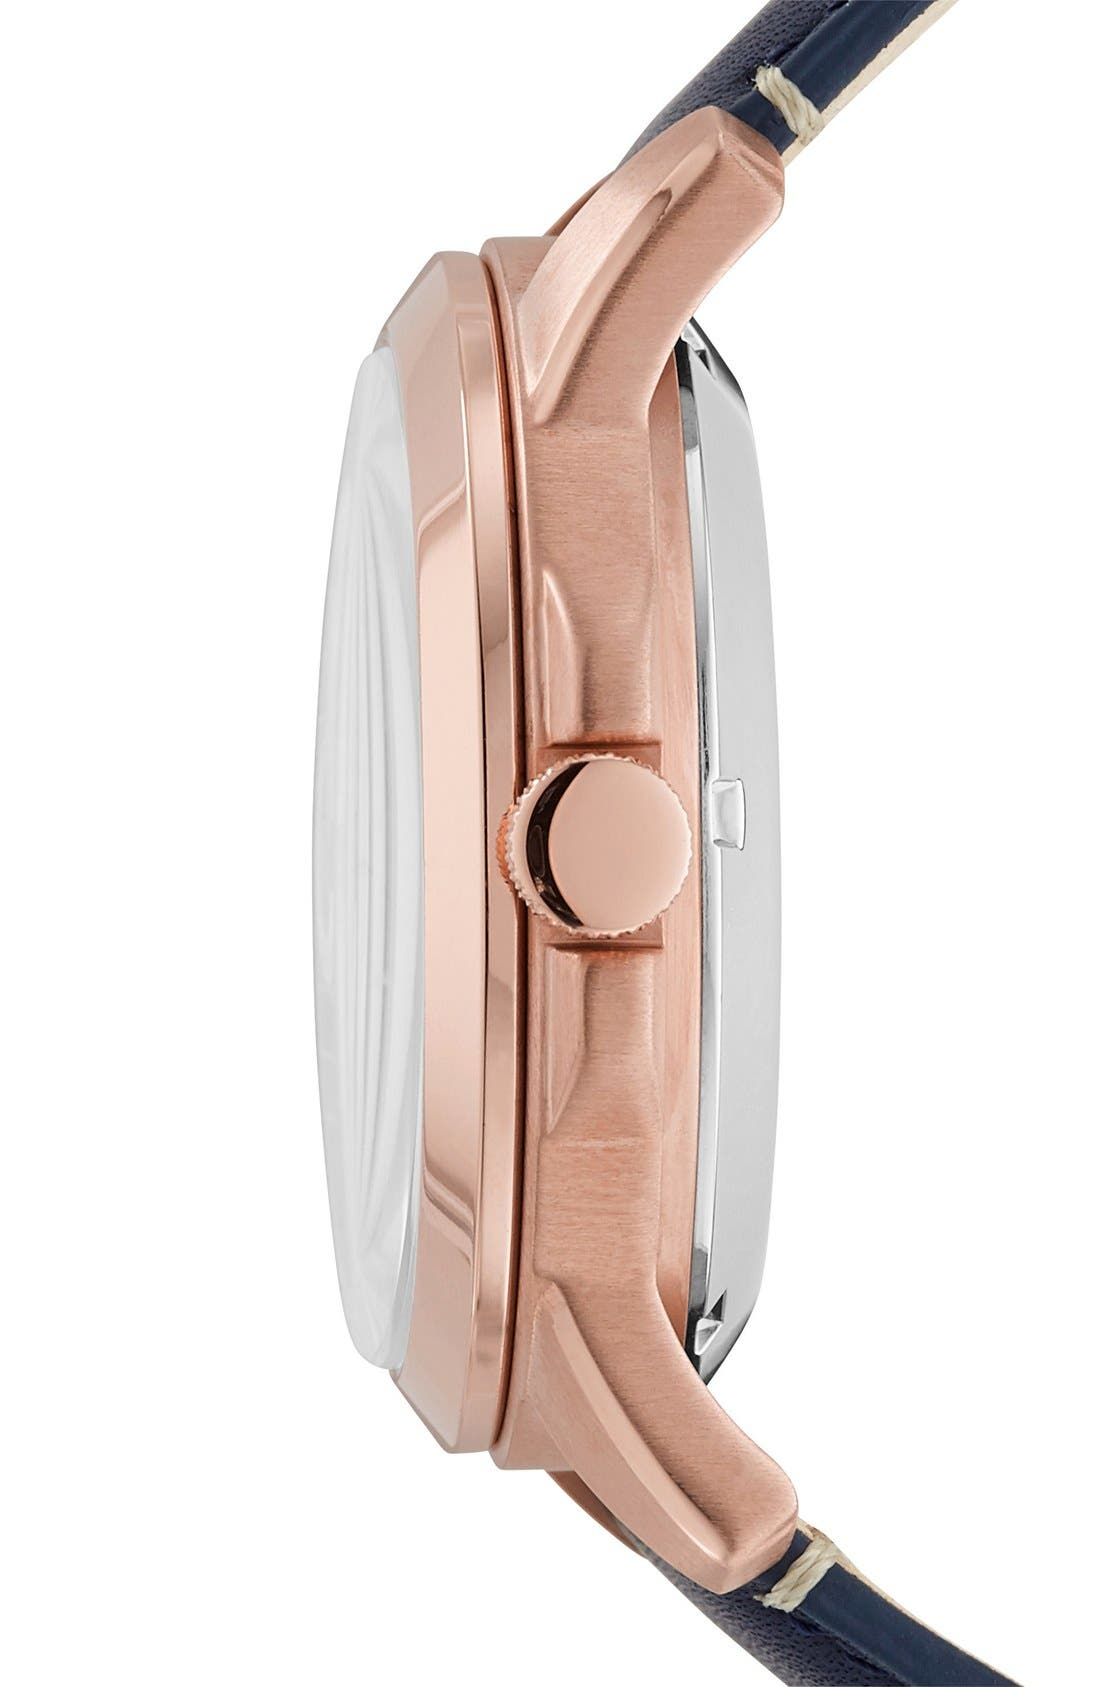 FOSSIL, 'Grant' Chronograph Leather Strap Watch, 44mm, Alternate thumbnail 3, color, NAVY/ ROSE GOLD